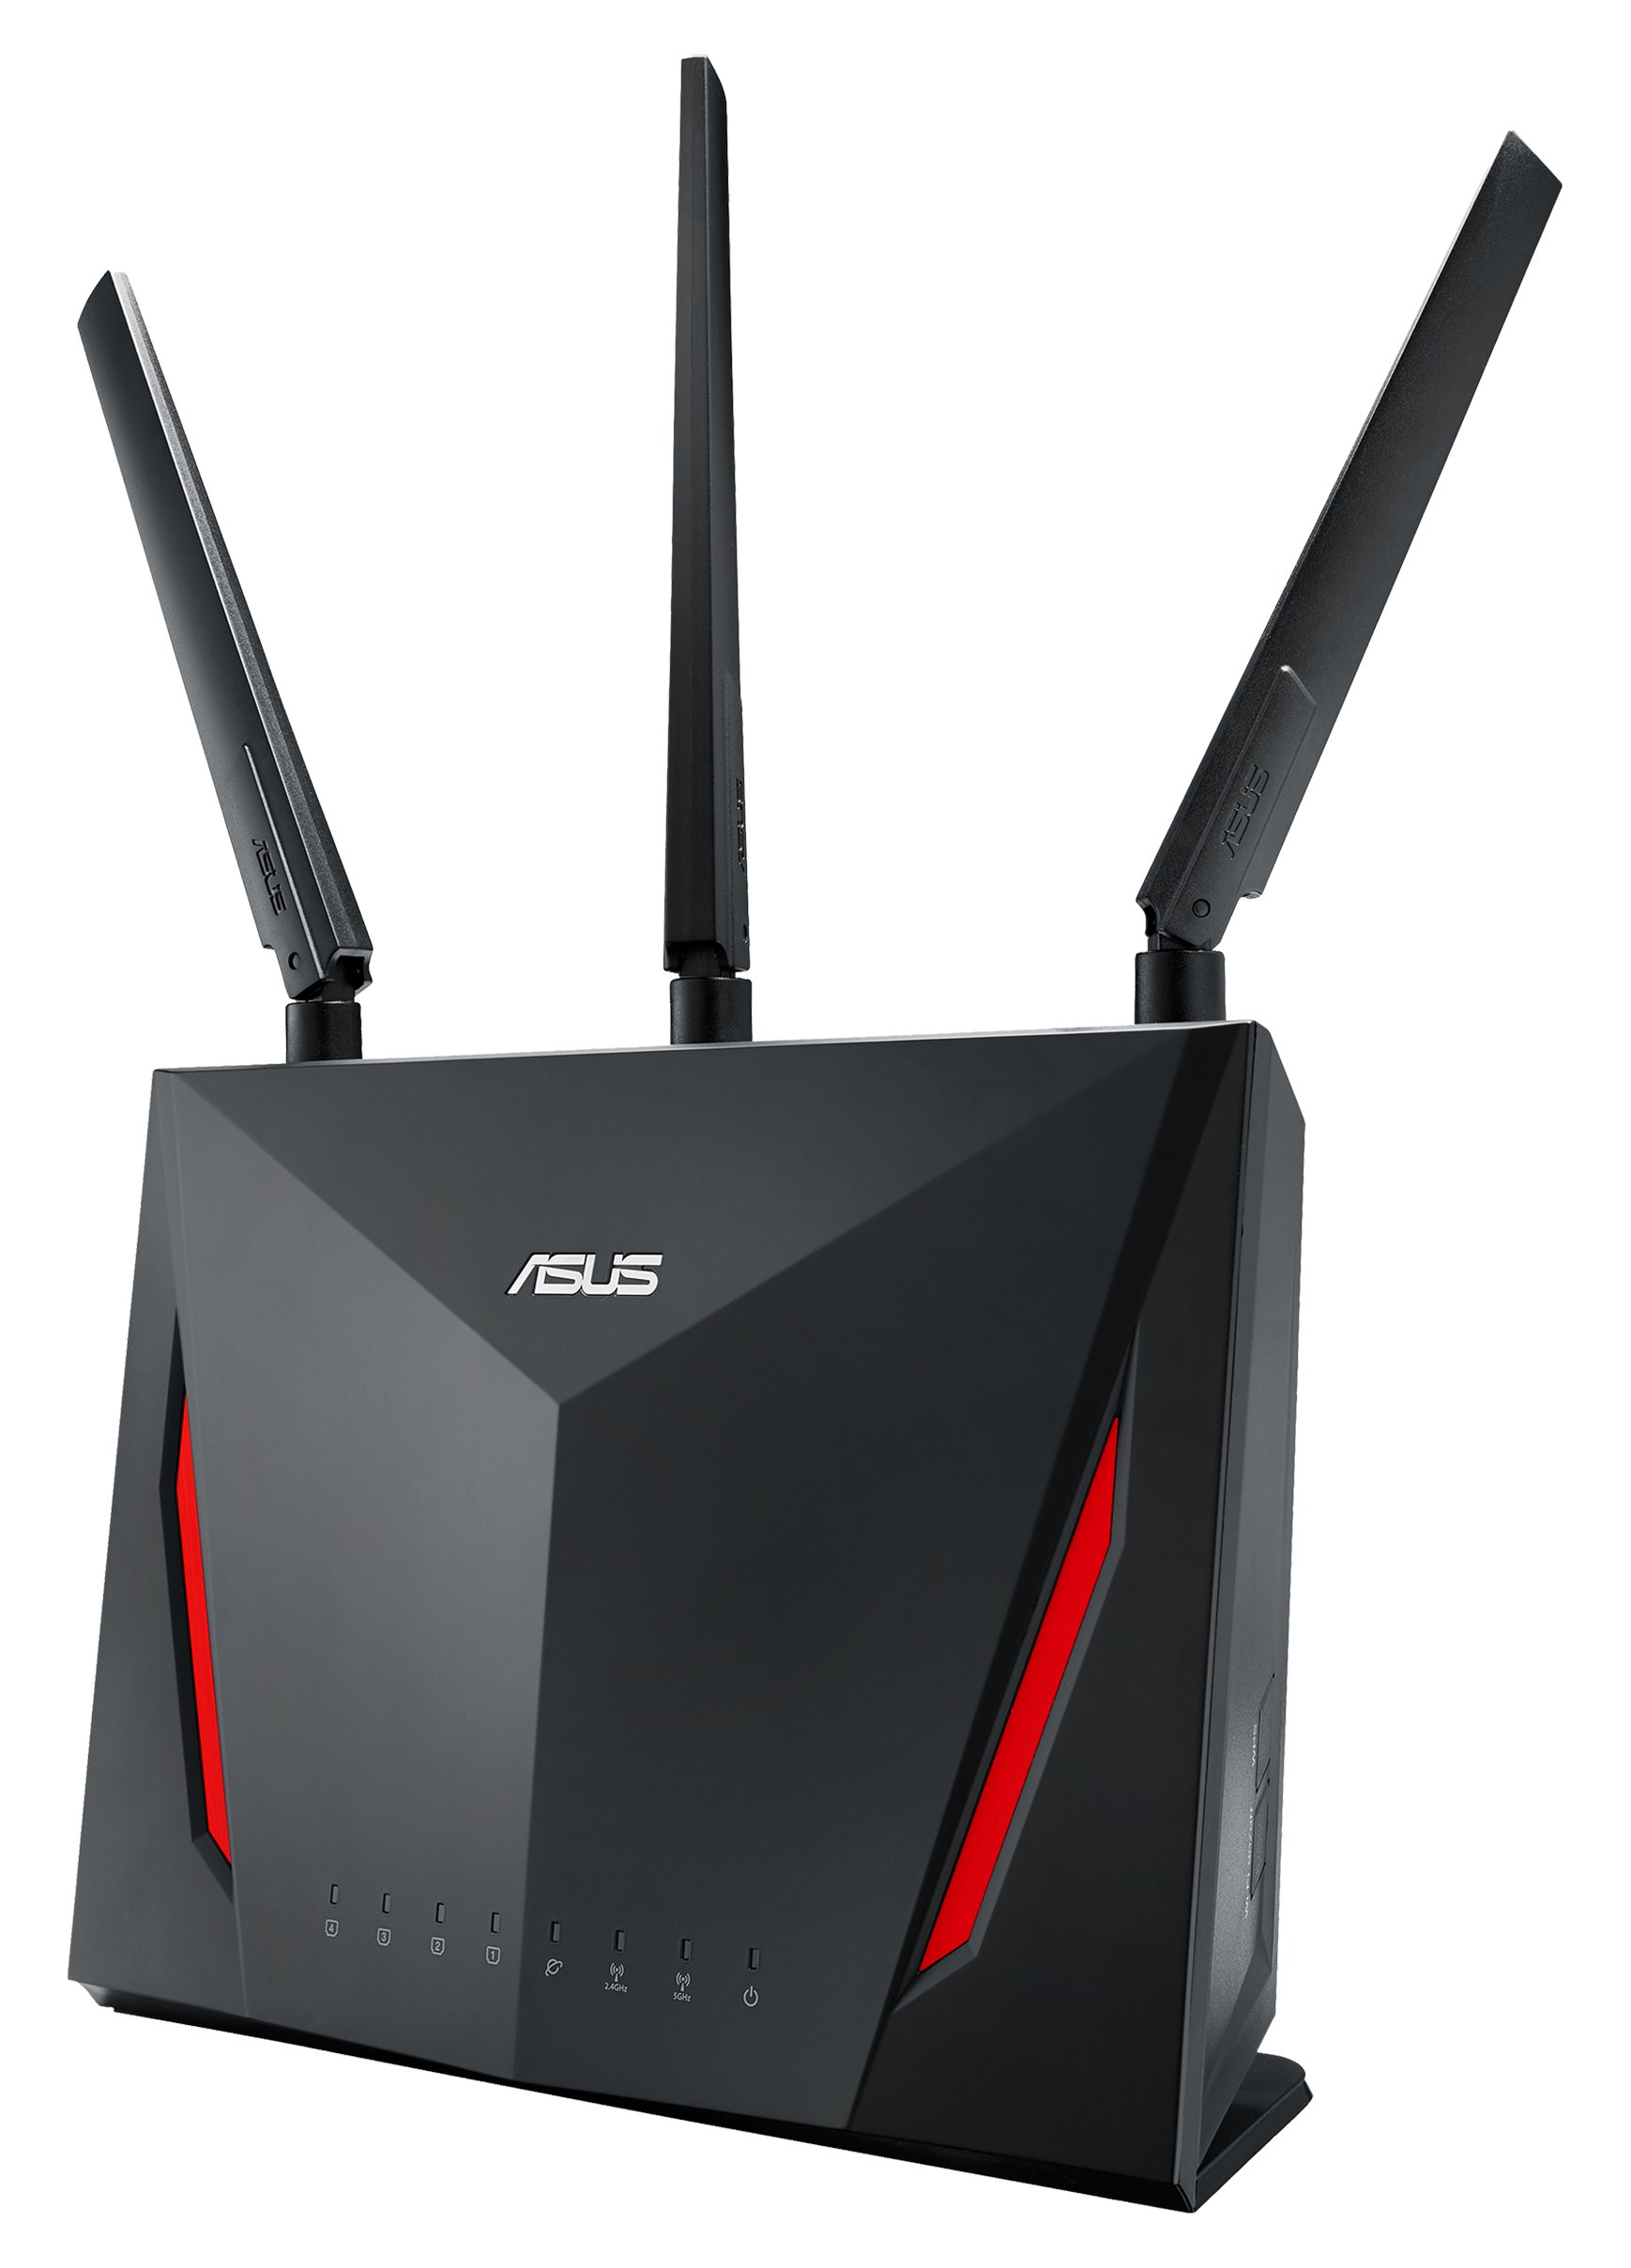 ASUS RT-AC86U Dual Band Wireless Router AC2900 WiFi with 4-Port Gigabit LAN, 1.8GHz Dual-Core Processor, USB 3.1 Gen1 and Aiprotection Network Security Powered by Trend Micro by Asus